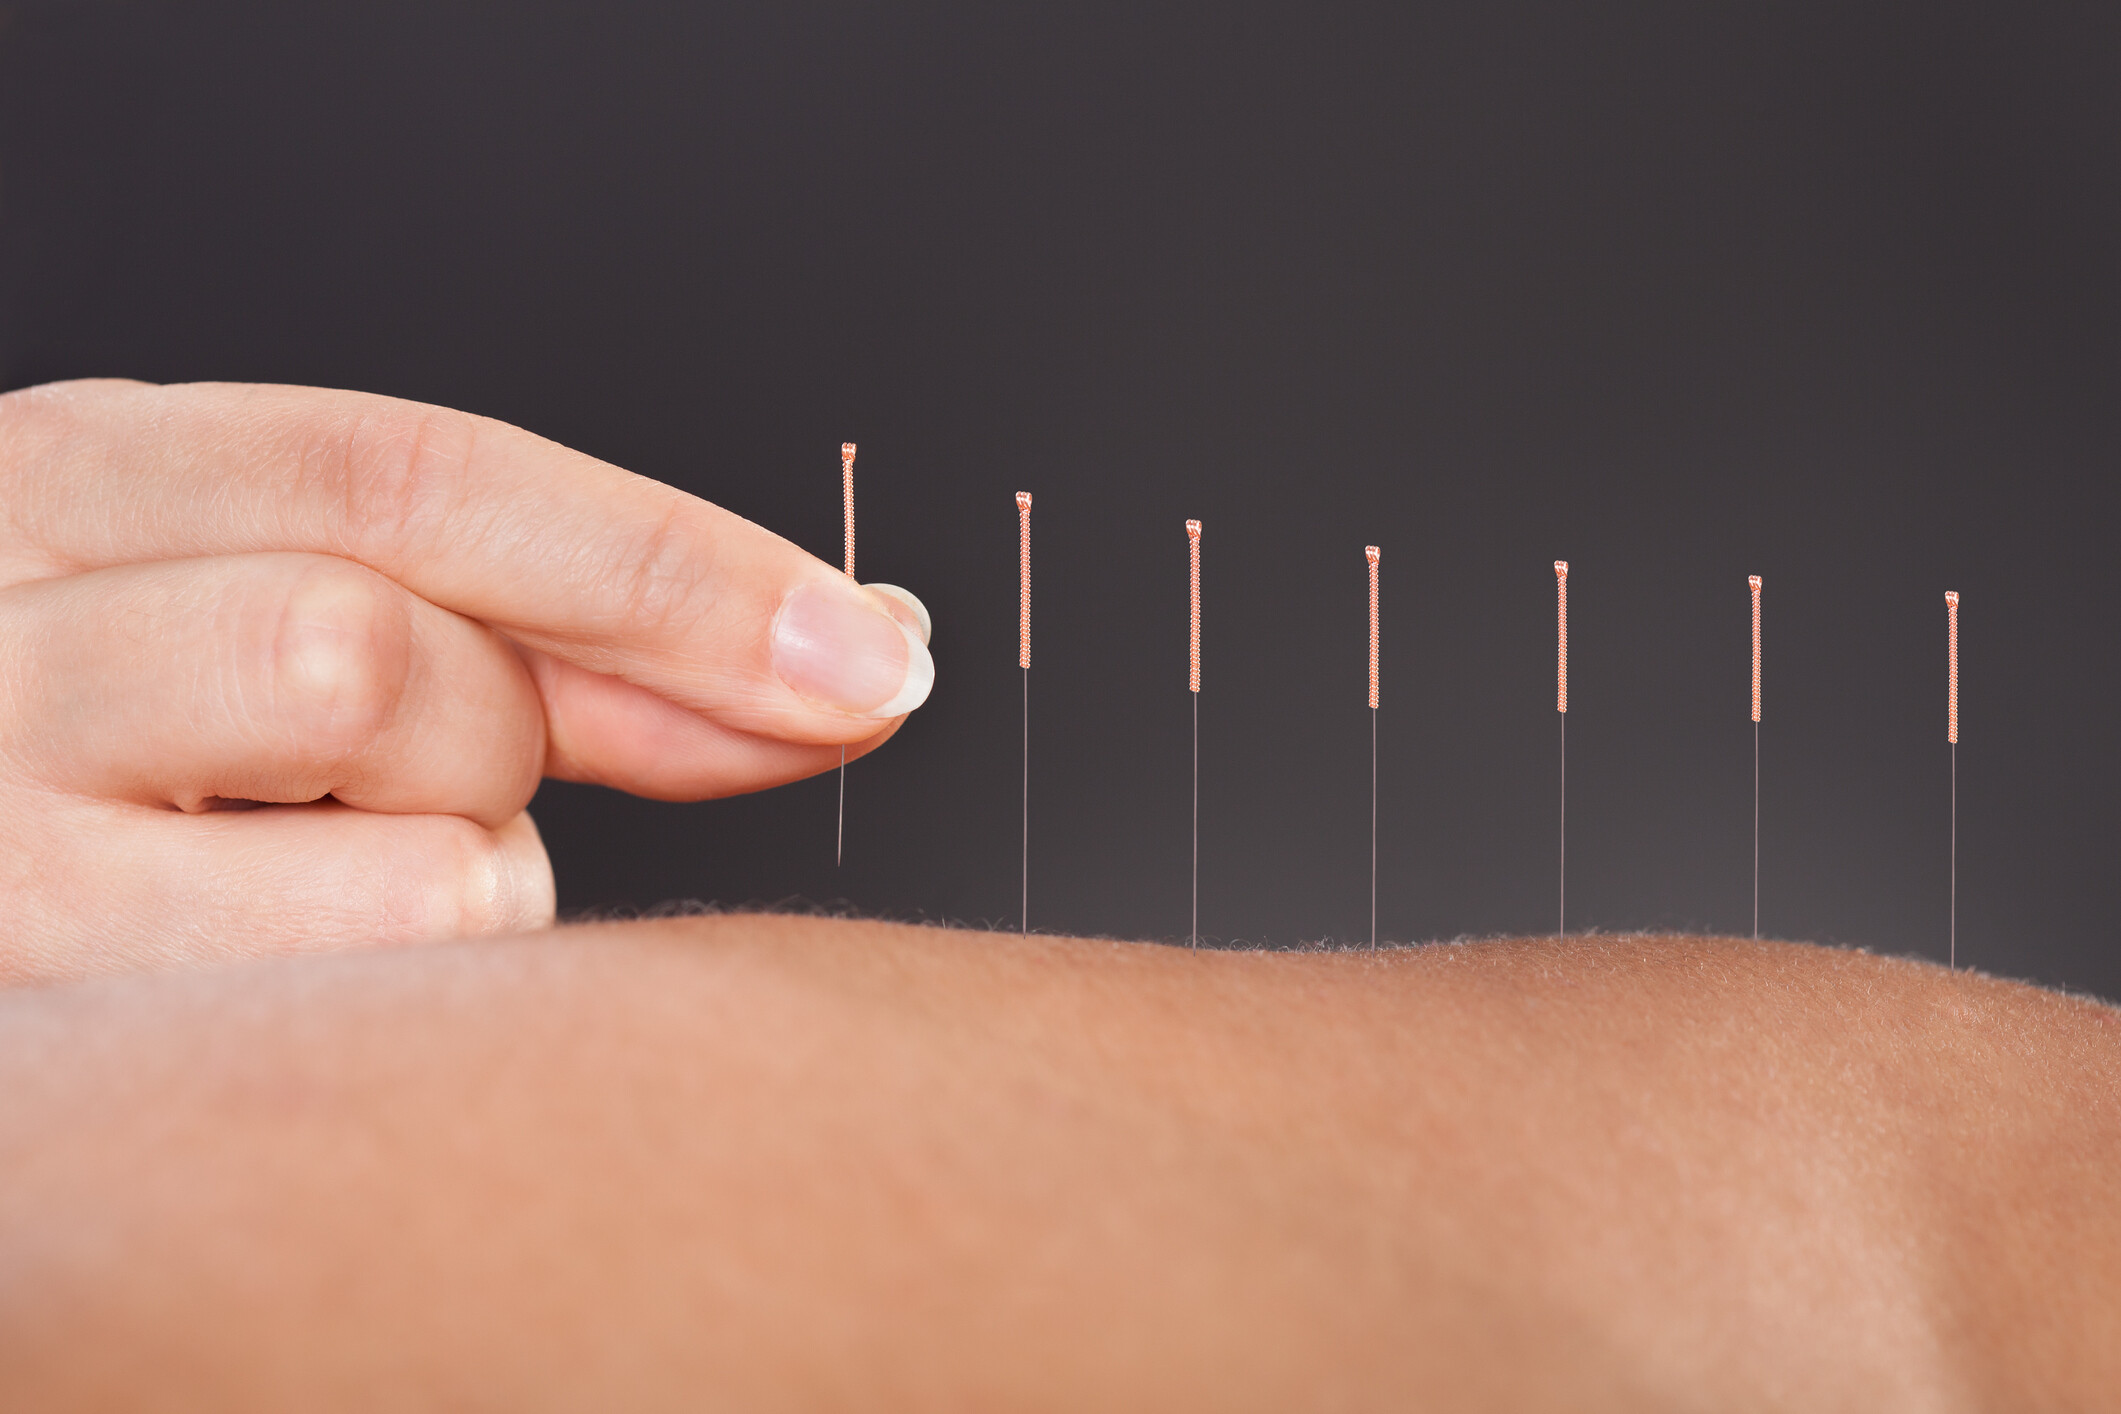 Healing-Headaches-with-Acupuncture